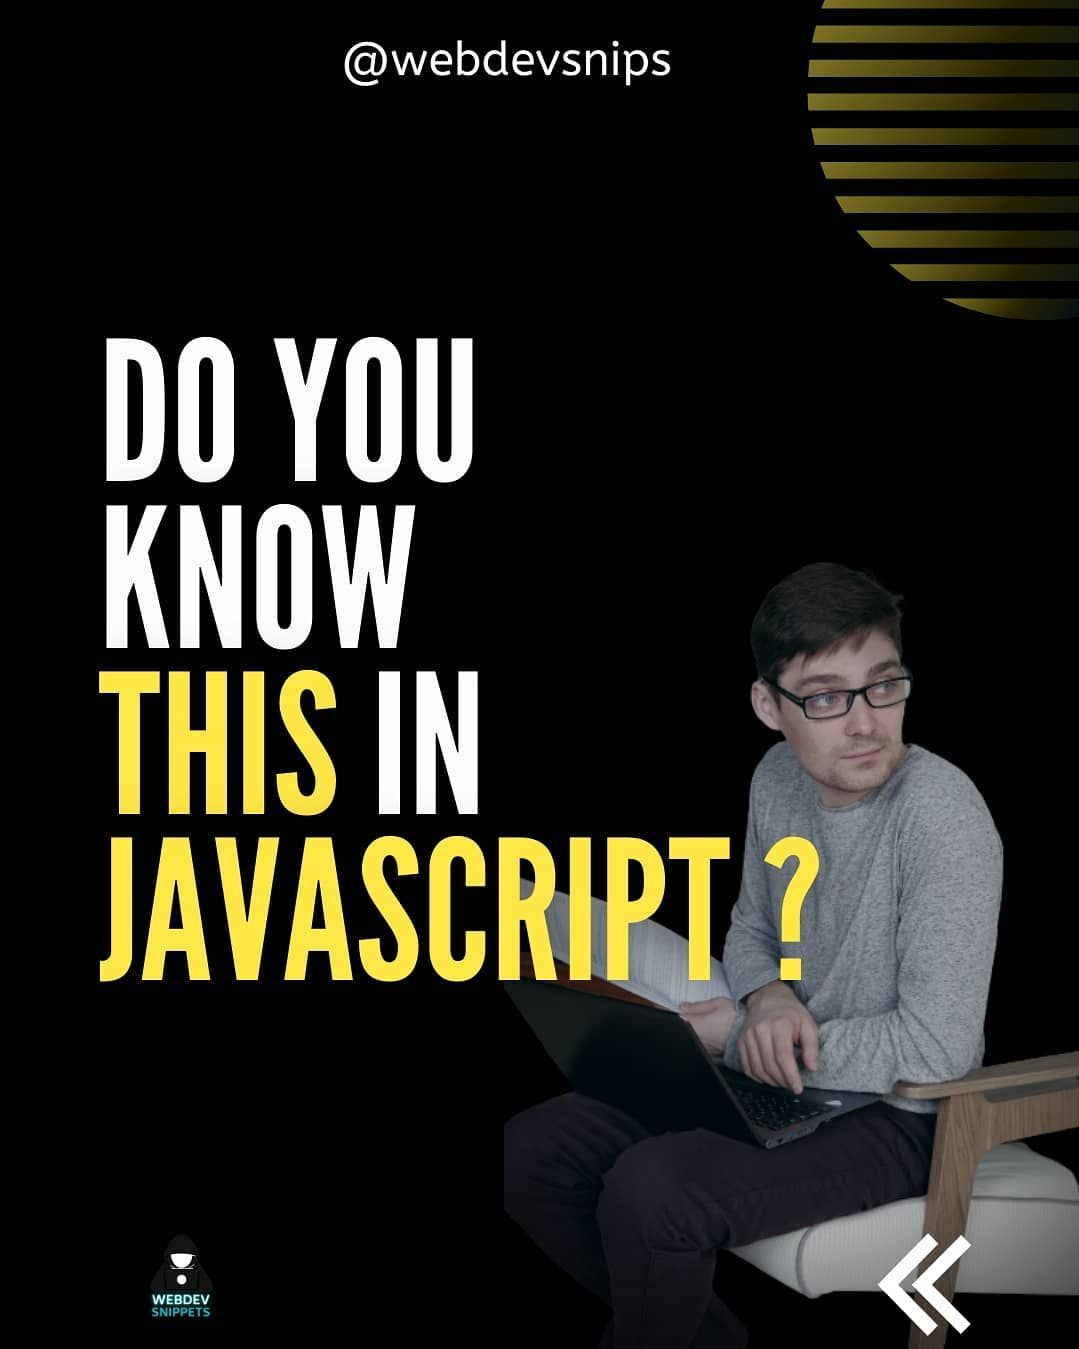 Do you know this in javascript